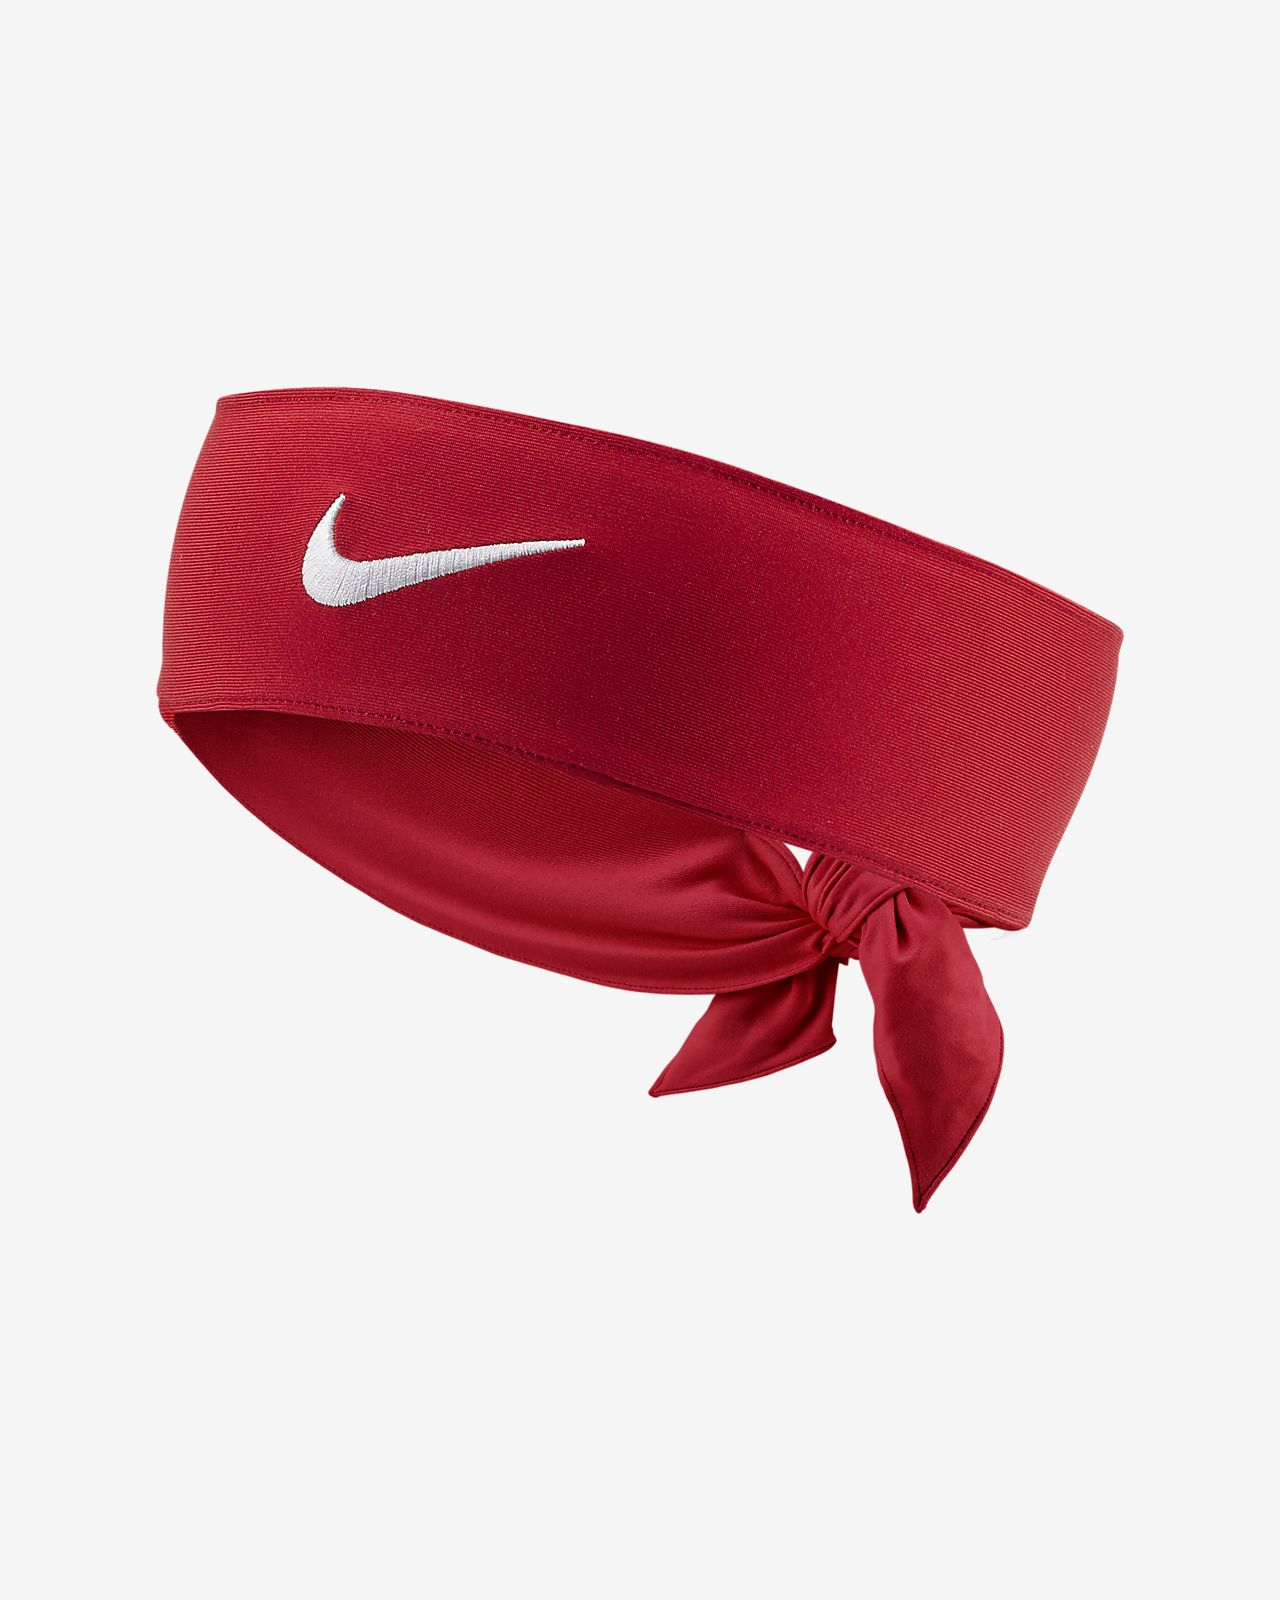 711ee71fe1e8 NikeCourt Dri-FIT 2.0 Tennis Head Tie. Nike.com